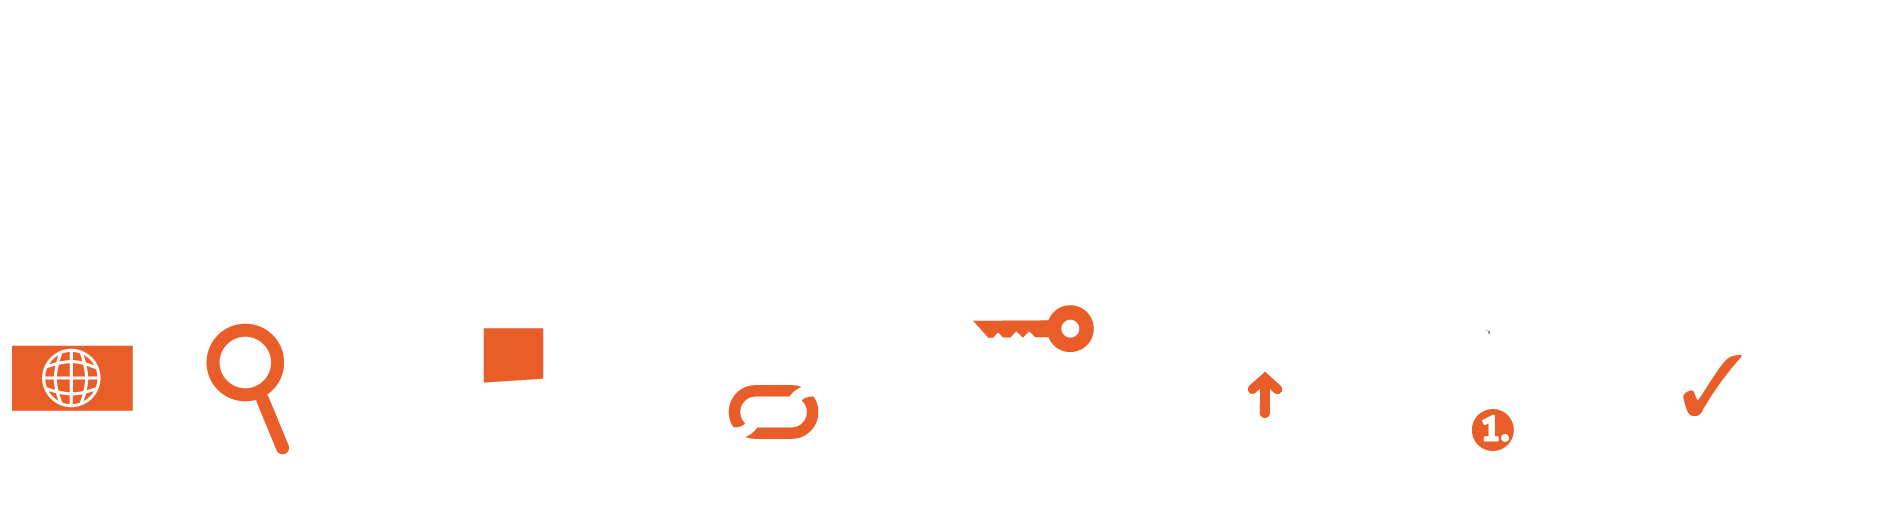 Artistic rendering of SEO stages